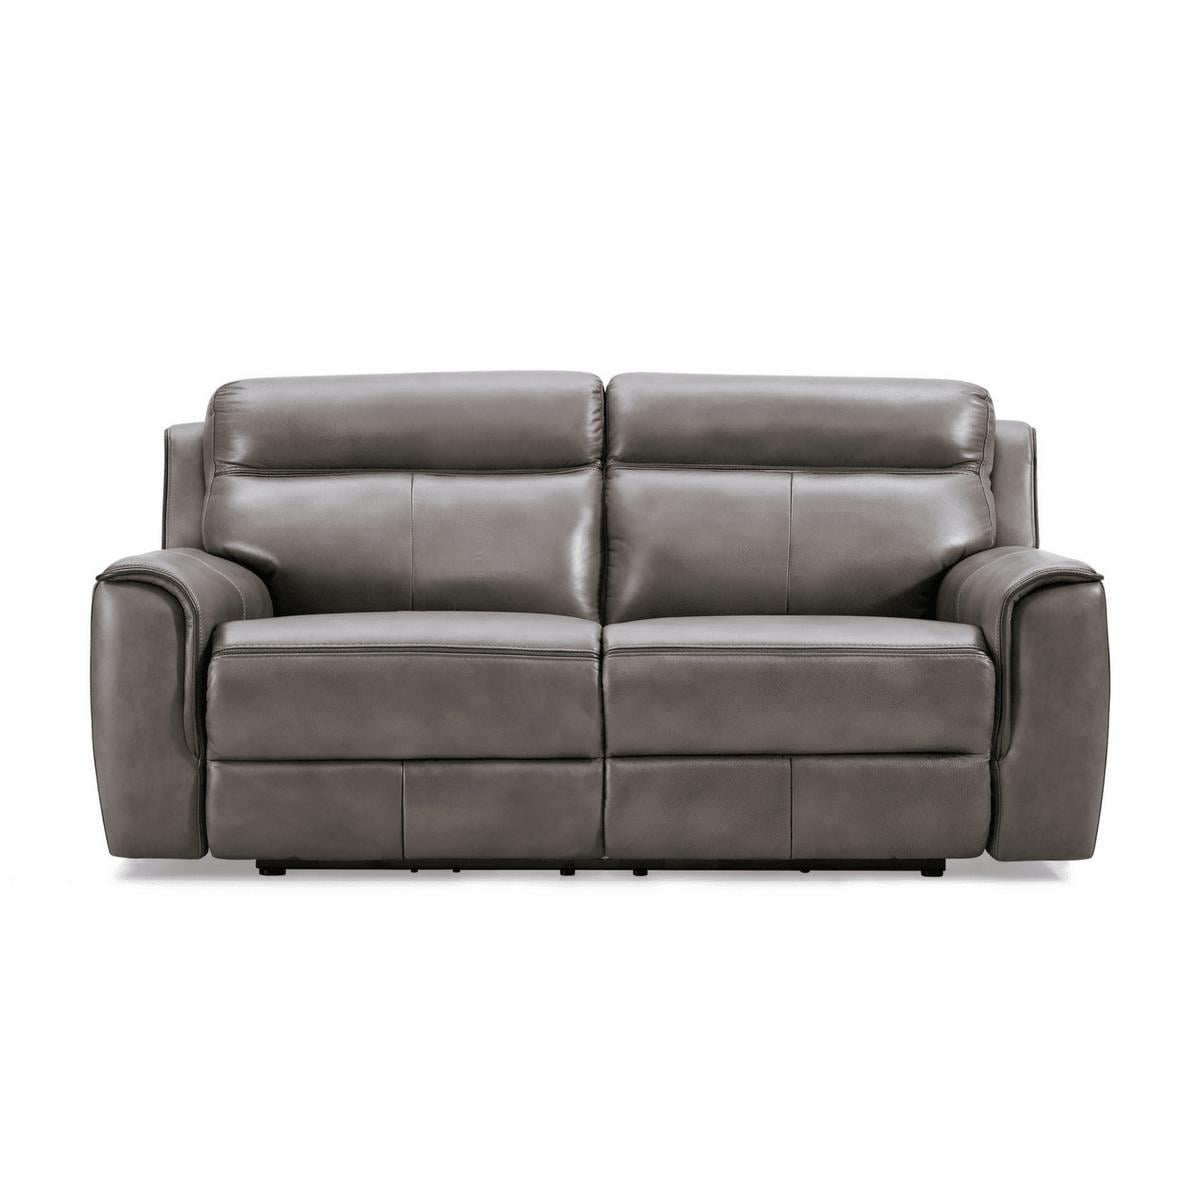 Nathaniel 2 Seater Leather Recliner